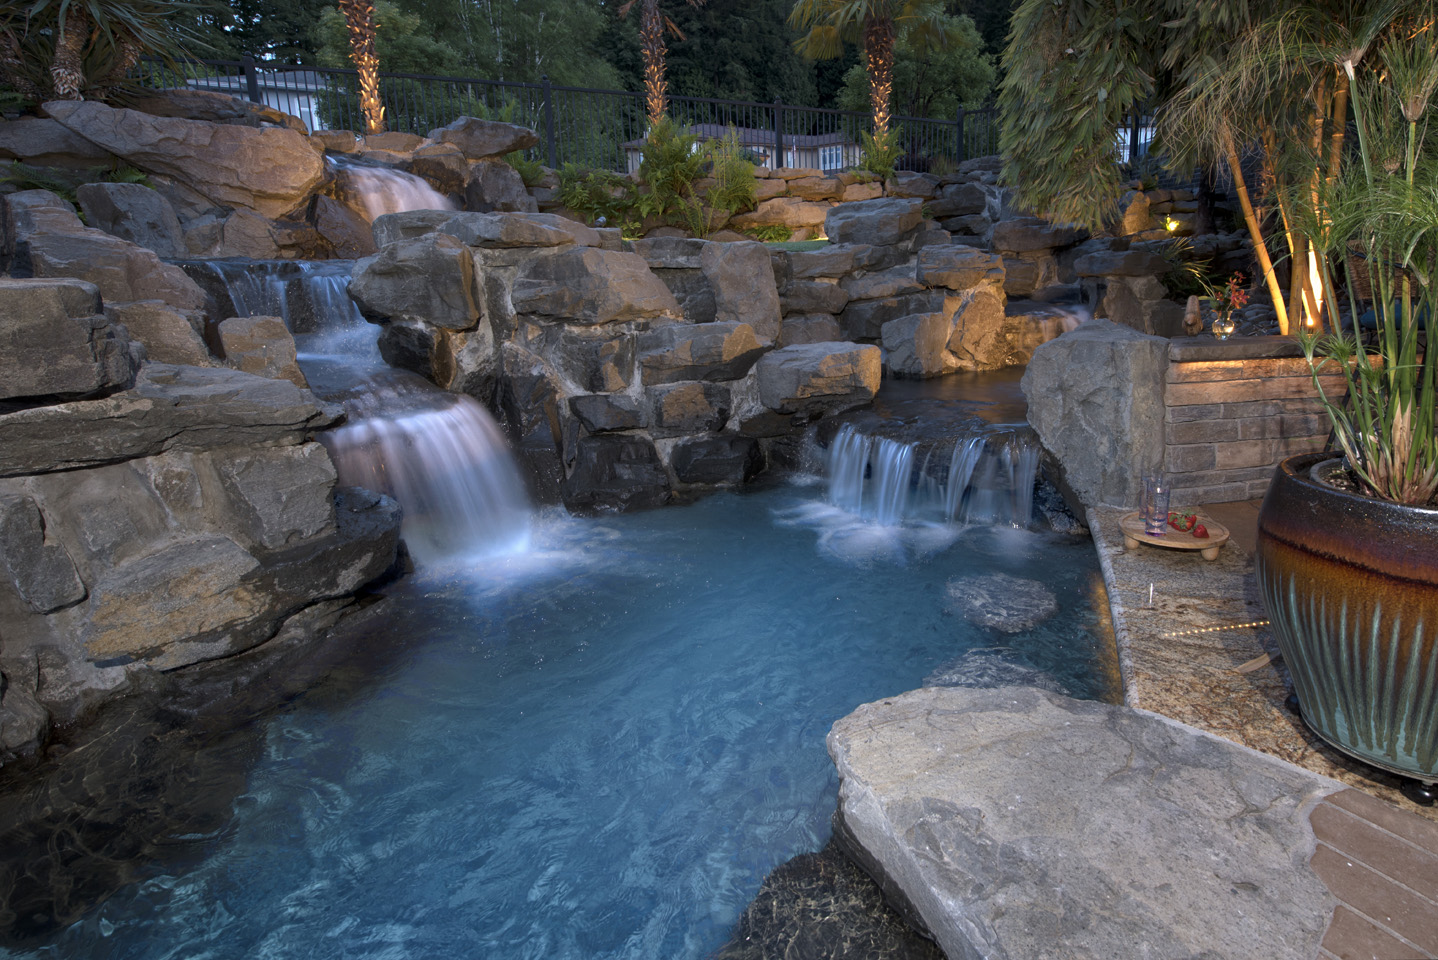 In Ground Pools Paradise Restored Landscaping